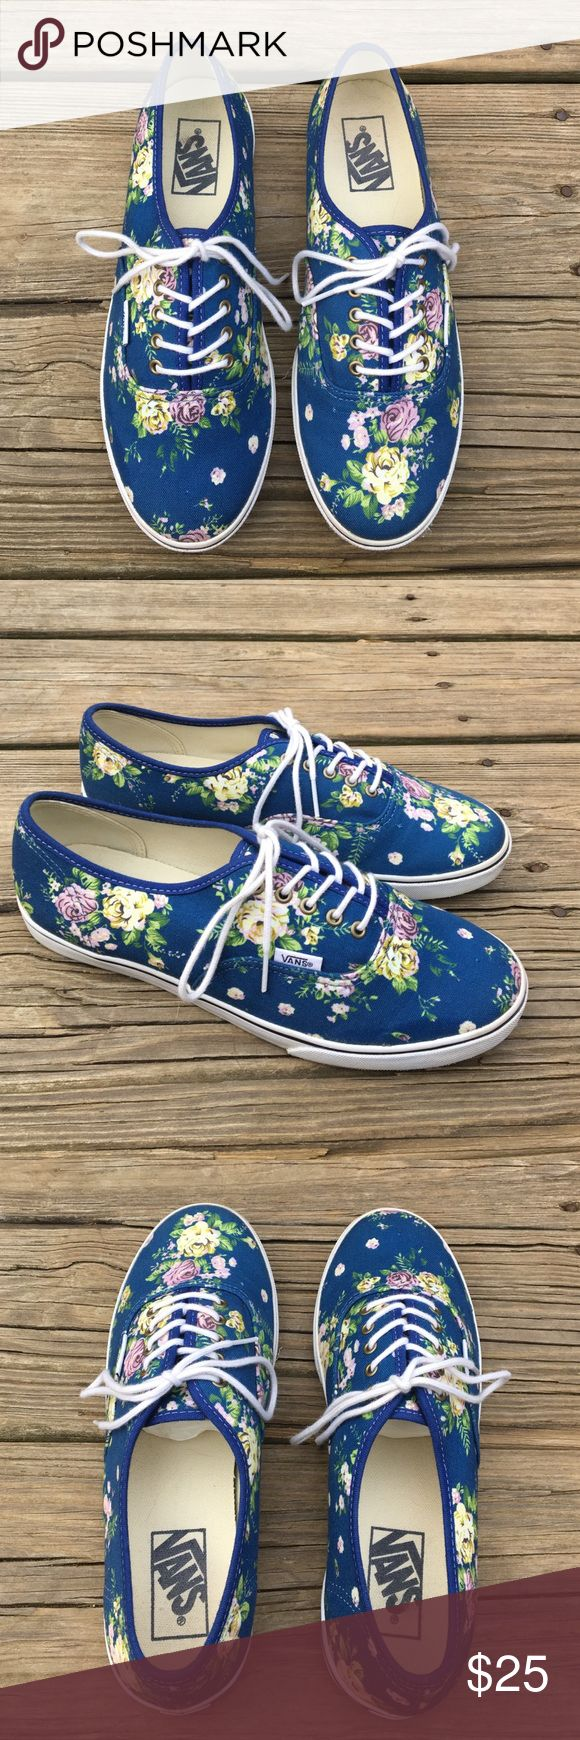 Women's Vans Lo Pro Floral Women's Vans Lo Pro Floral. Blue/White. Size 8. Barley worn. Almost like new. NO TRADES! Vans Shoes